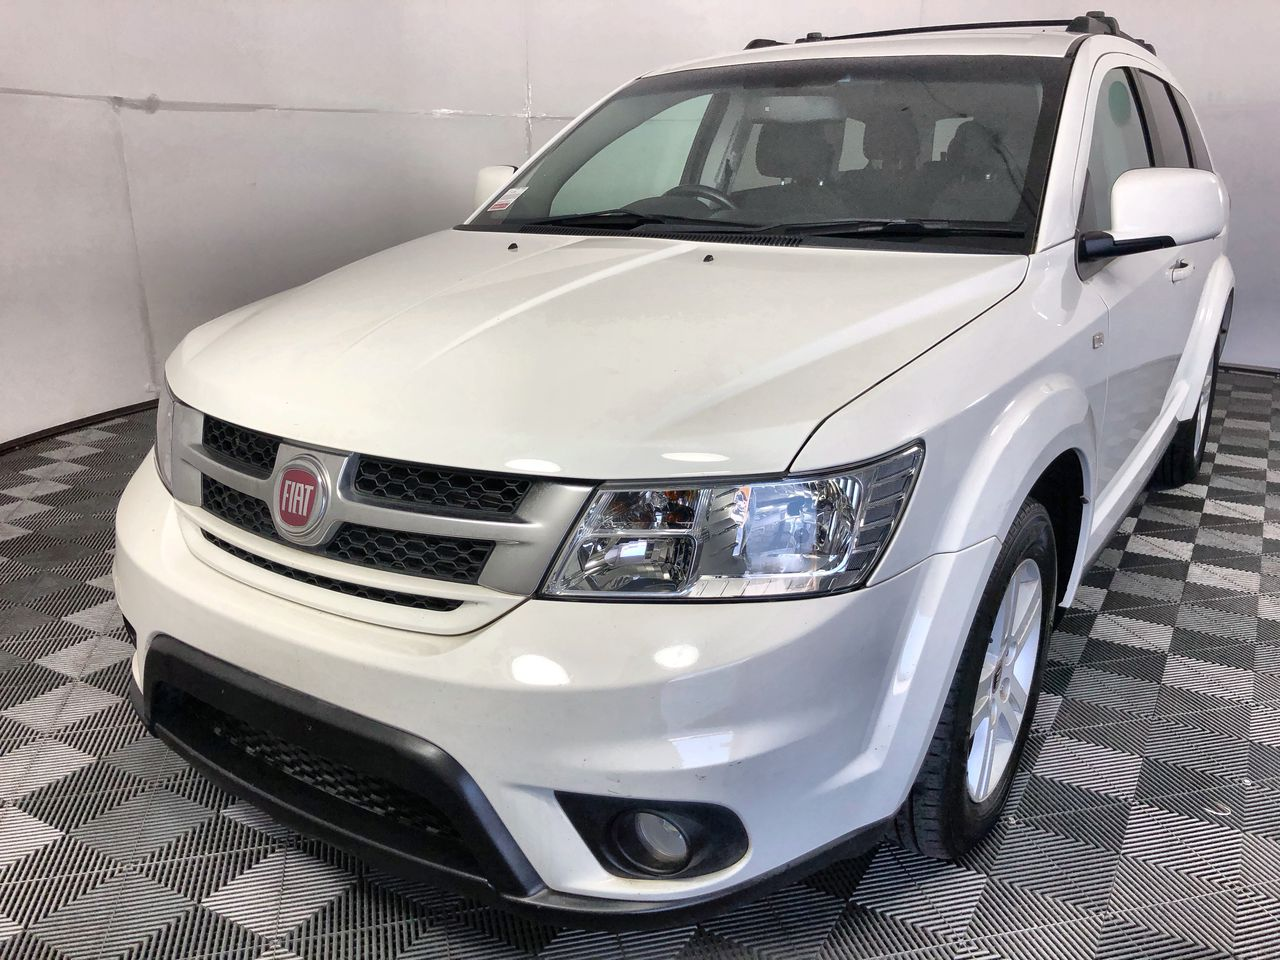 2015 Fiat Freemont Urban Automatic 7 Seats Wagon 110,331km